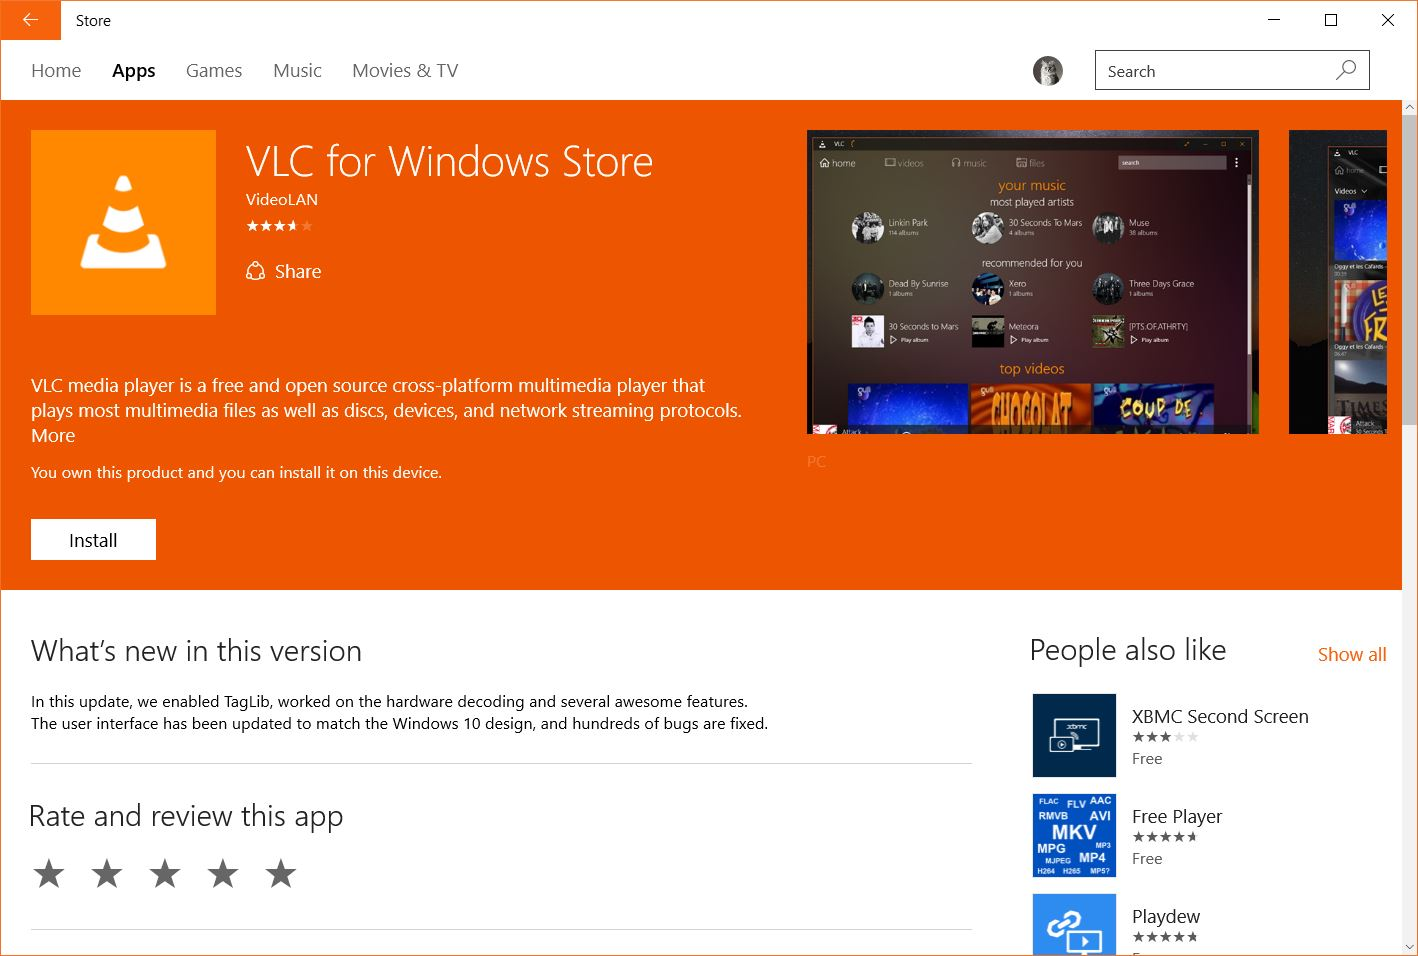 microsoft updates windows 10 store with background color themes